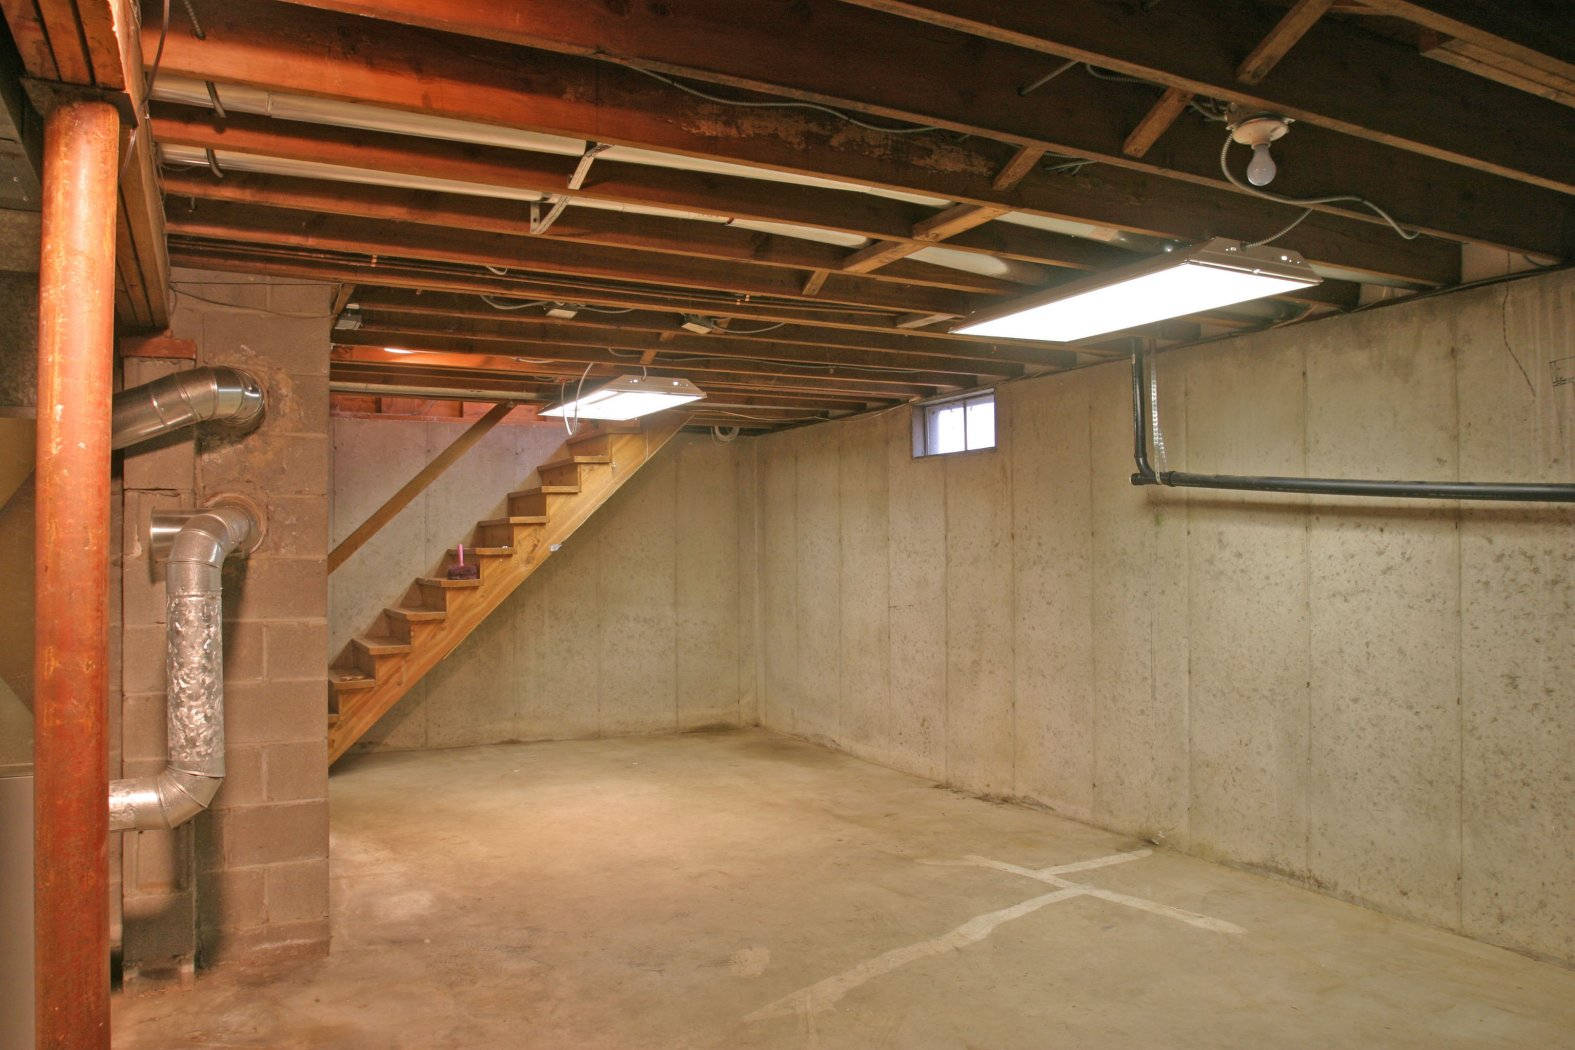 How A Finished Basement Can Increase Your Home Value By 50 To 70k